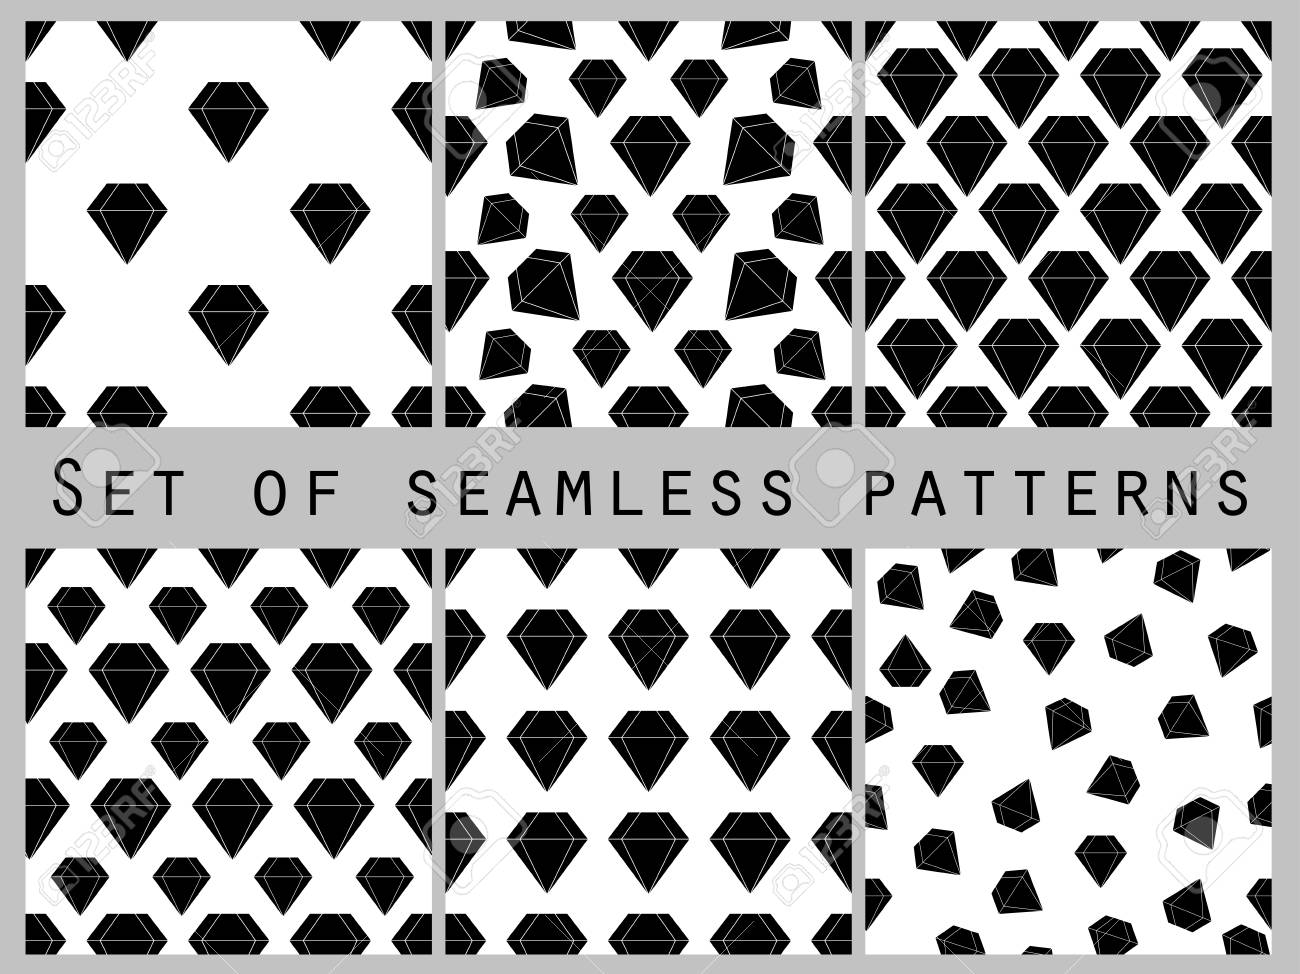 Set Of Seamless Patterns With Diamonds Black And White Color The Faceted